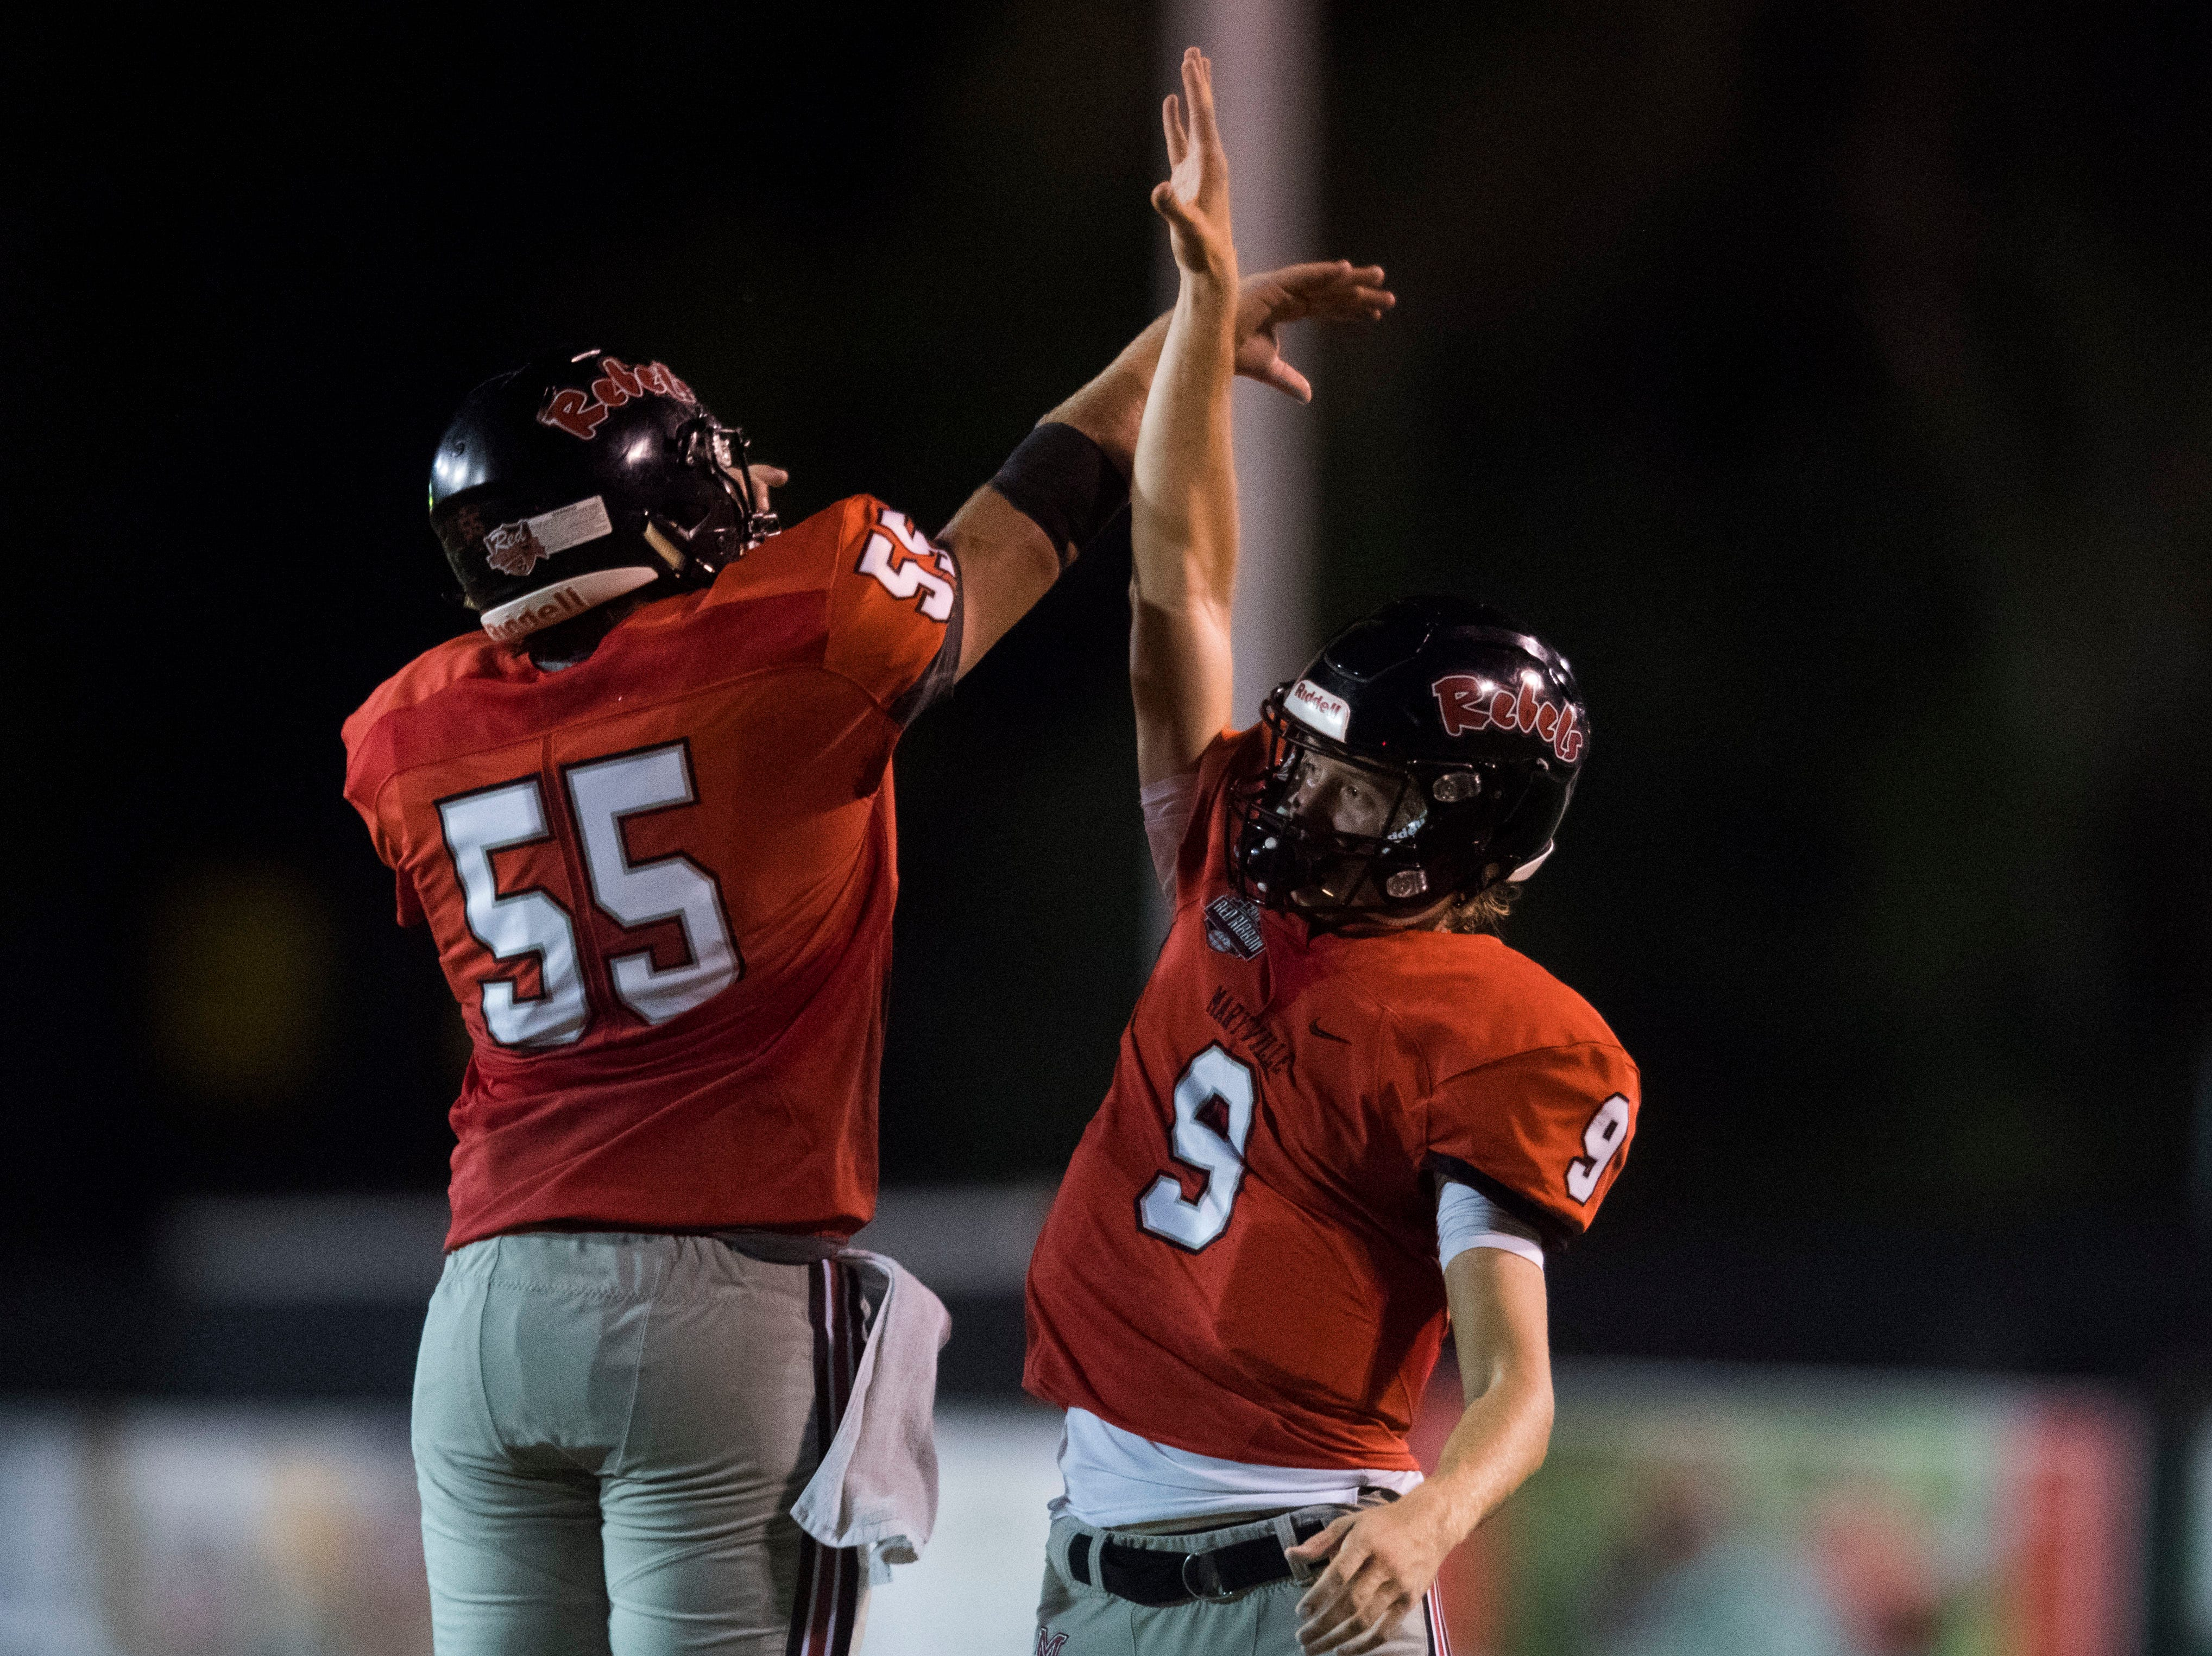 Maryville's William Harding (55) and Maryville's Cade Chambers (9) celebrate a play during a game between Cleveland and Maryville at Maryville Thursday, Oct. 4, 2018. Maryville defeated Cleveland 42-7.